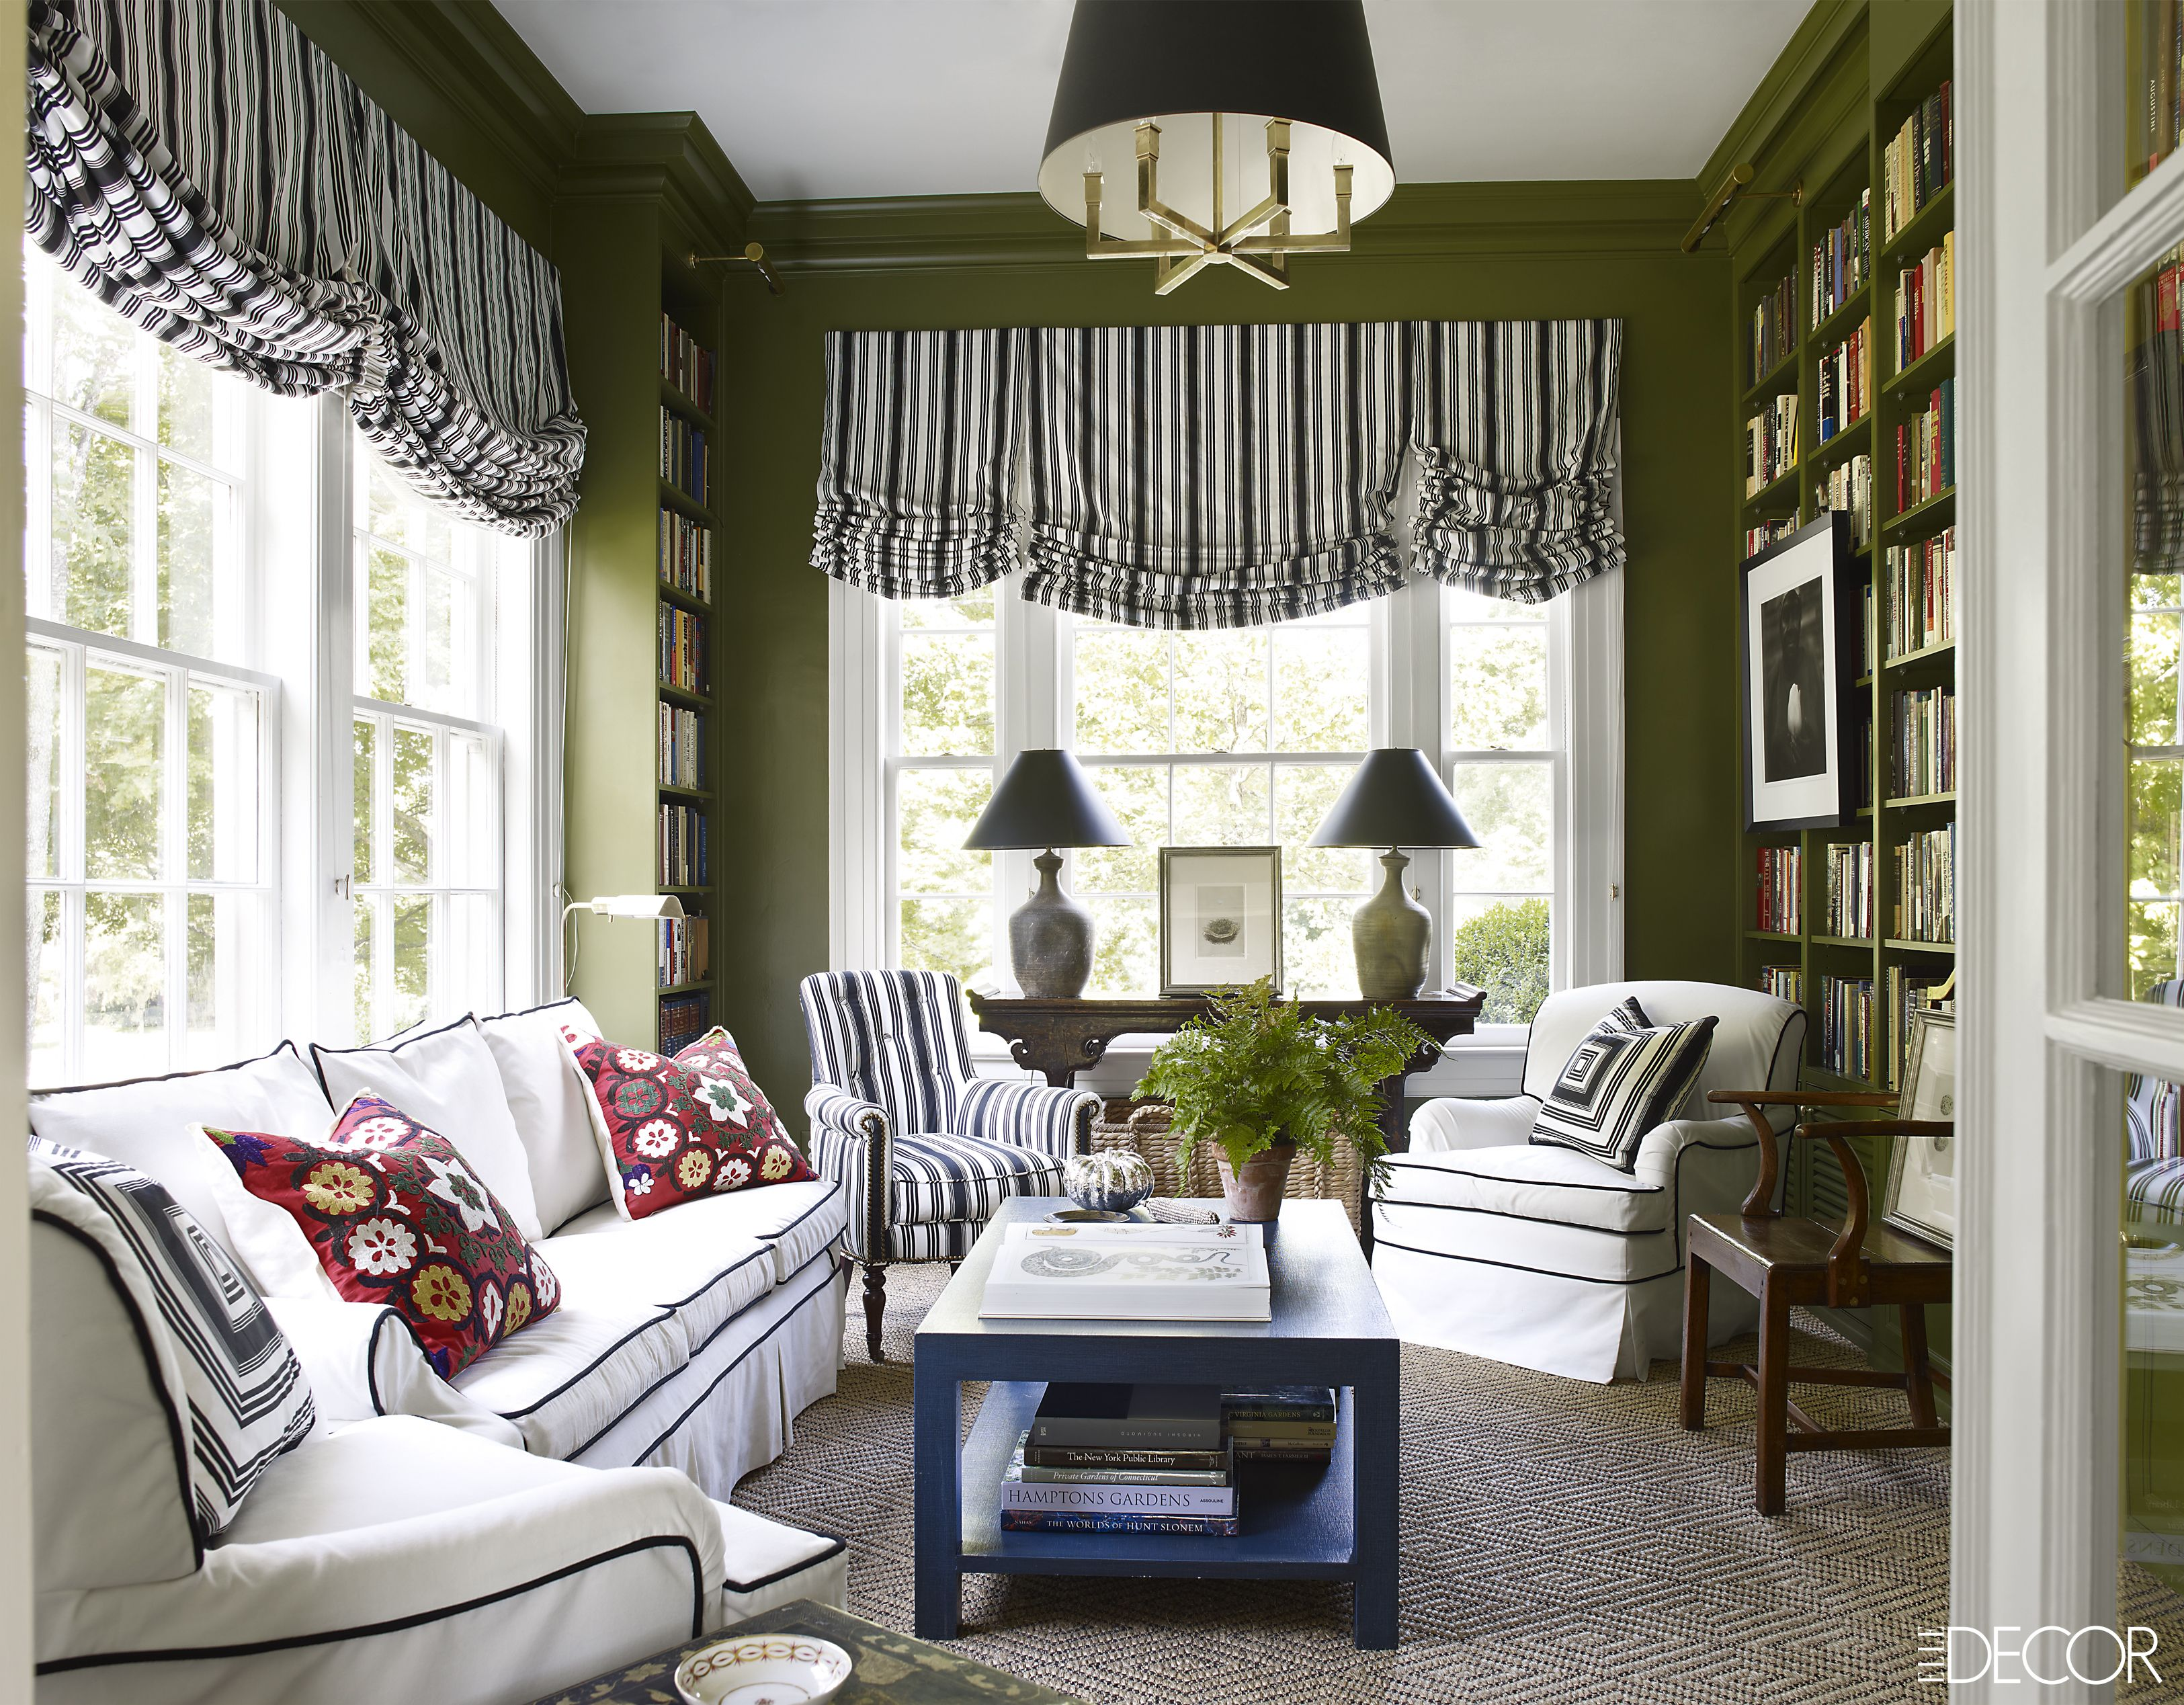 Room Color Scheme Ideas 20 best green rooms - green paint colors and decor ideas